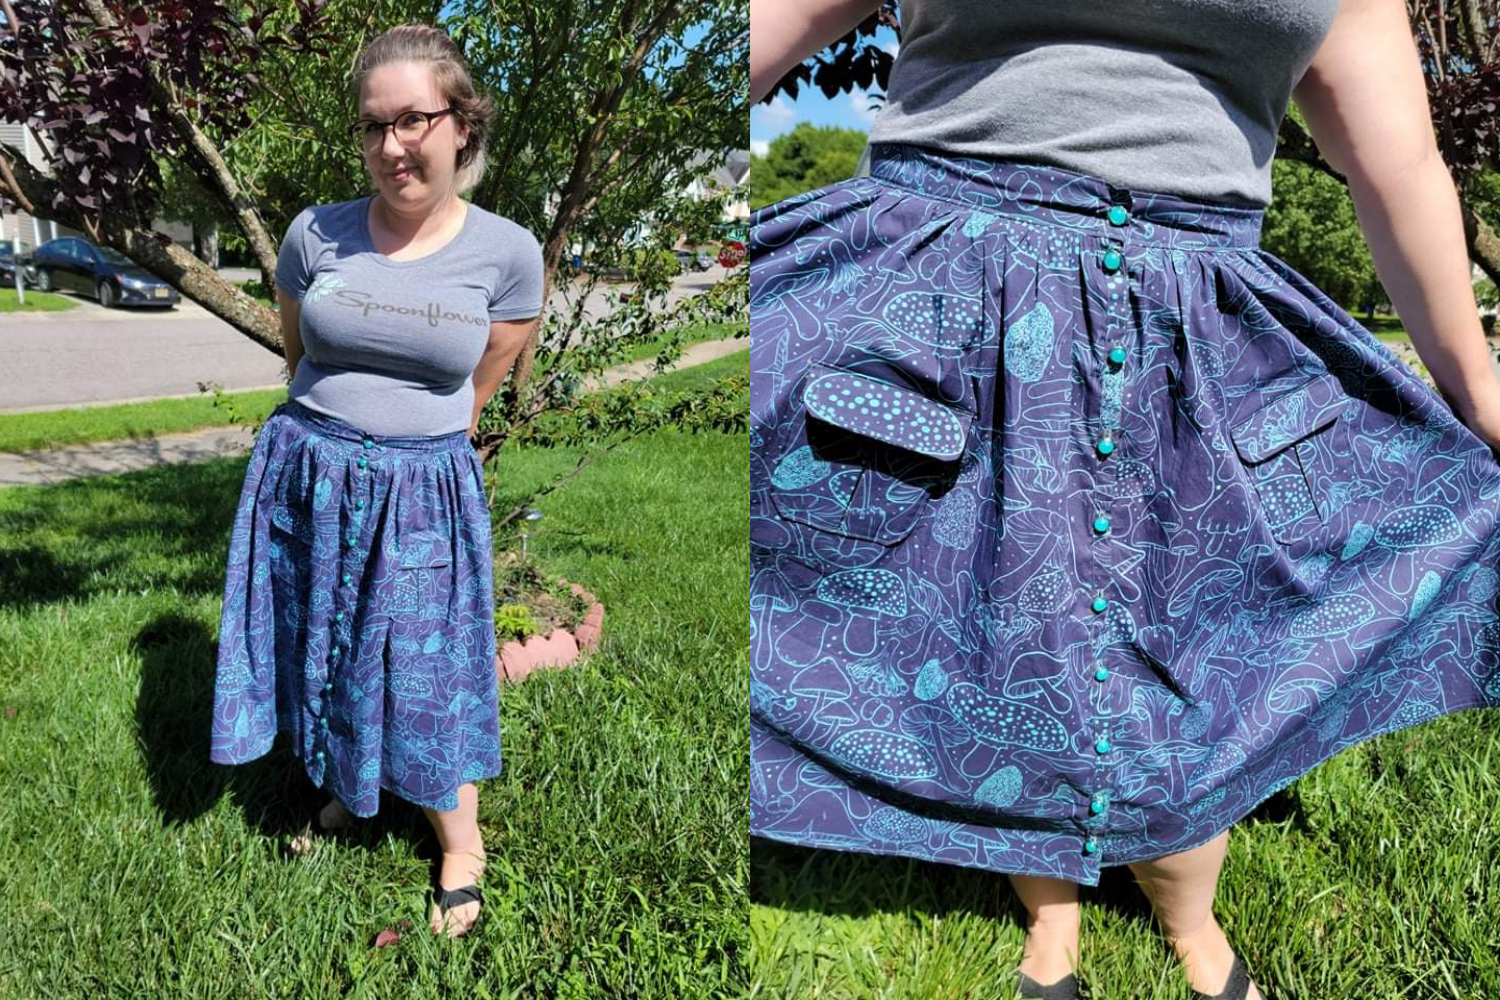 Skirt with a purple and blue mushroom design